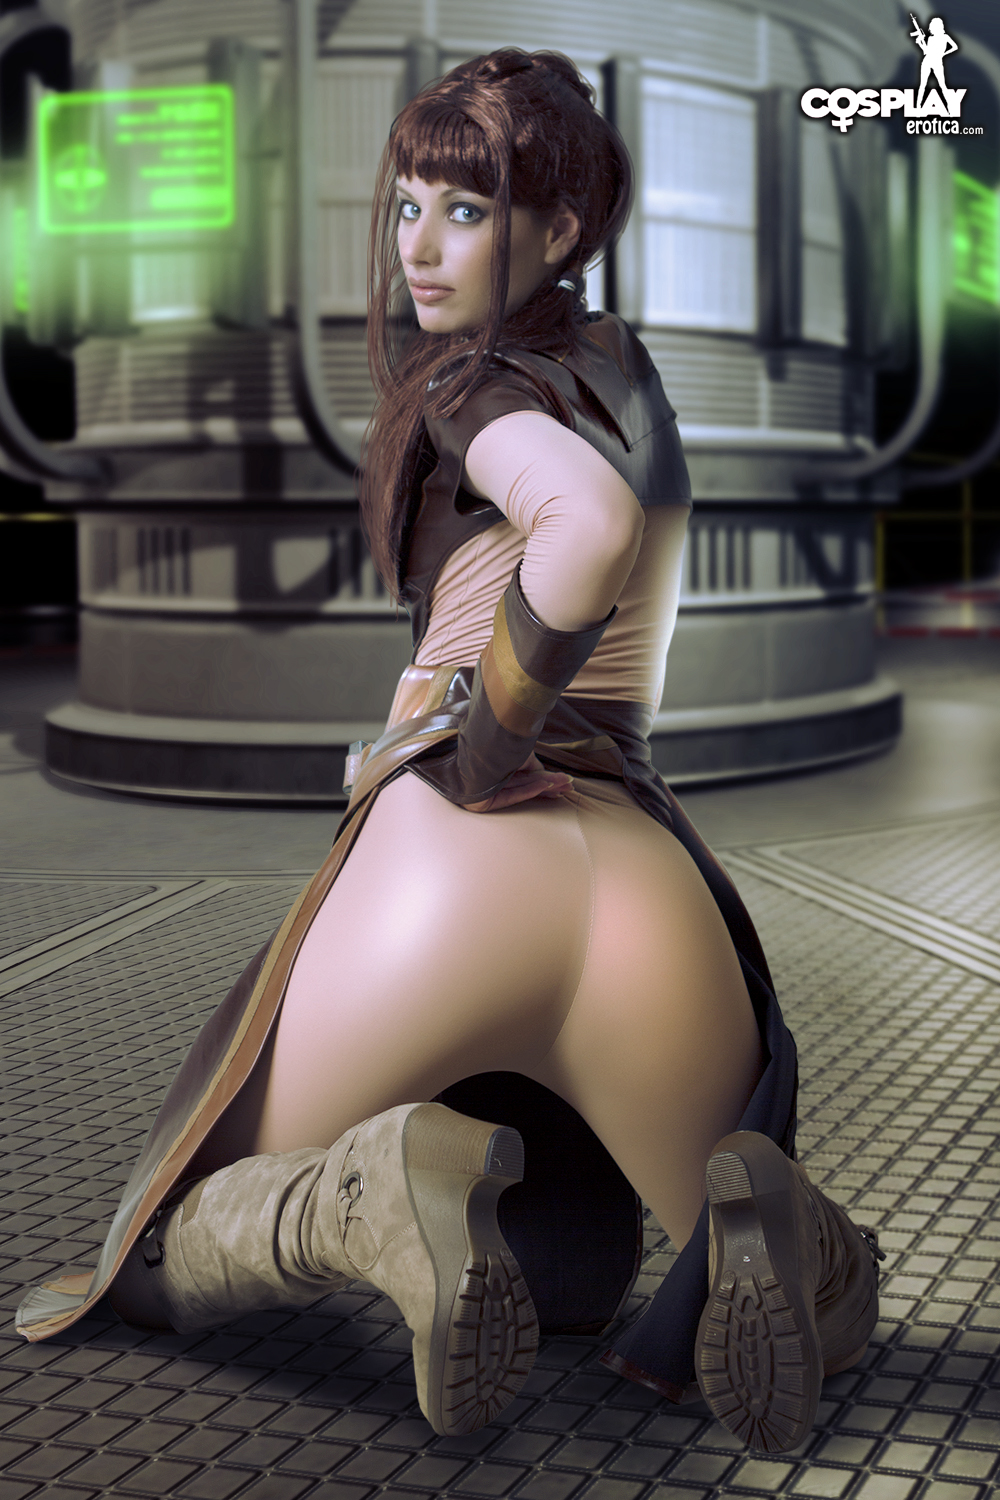 Are Nude star wars girls think